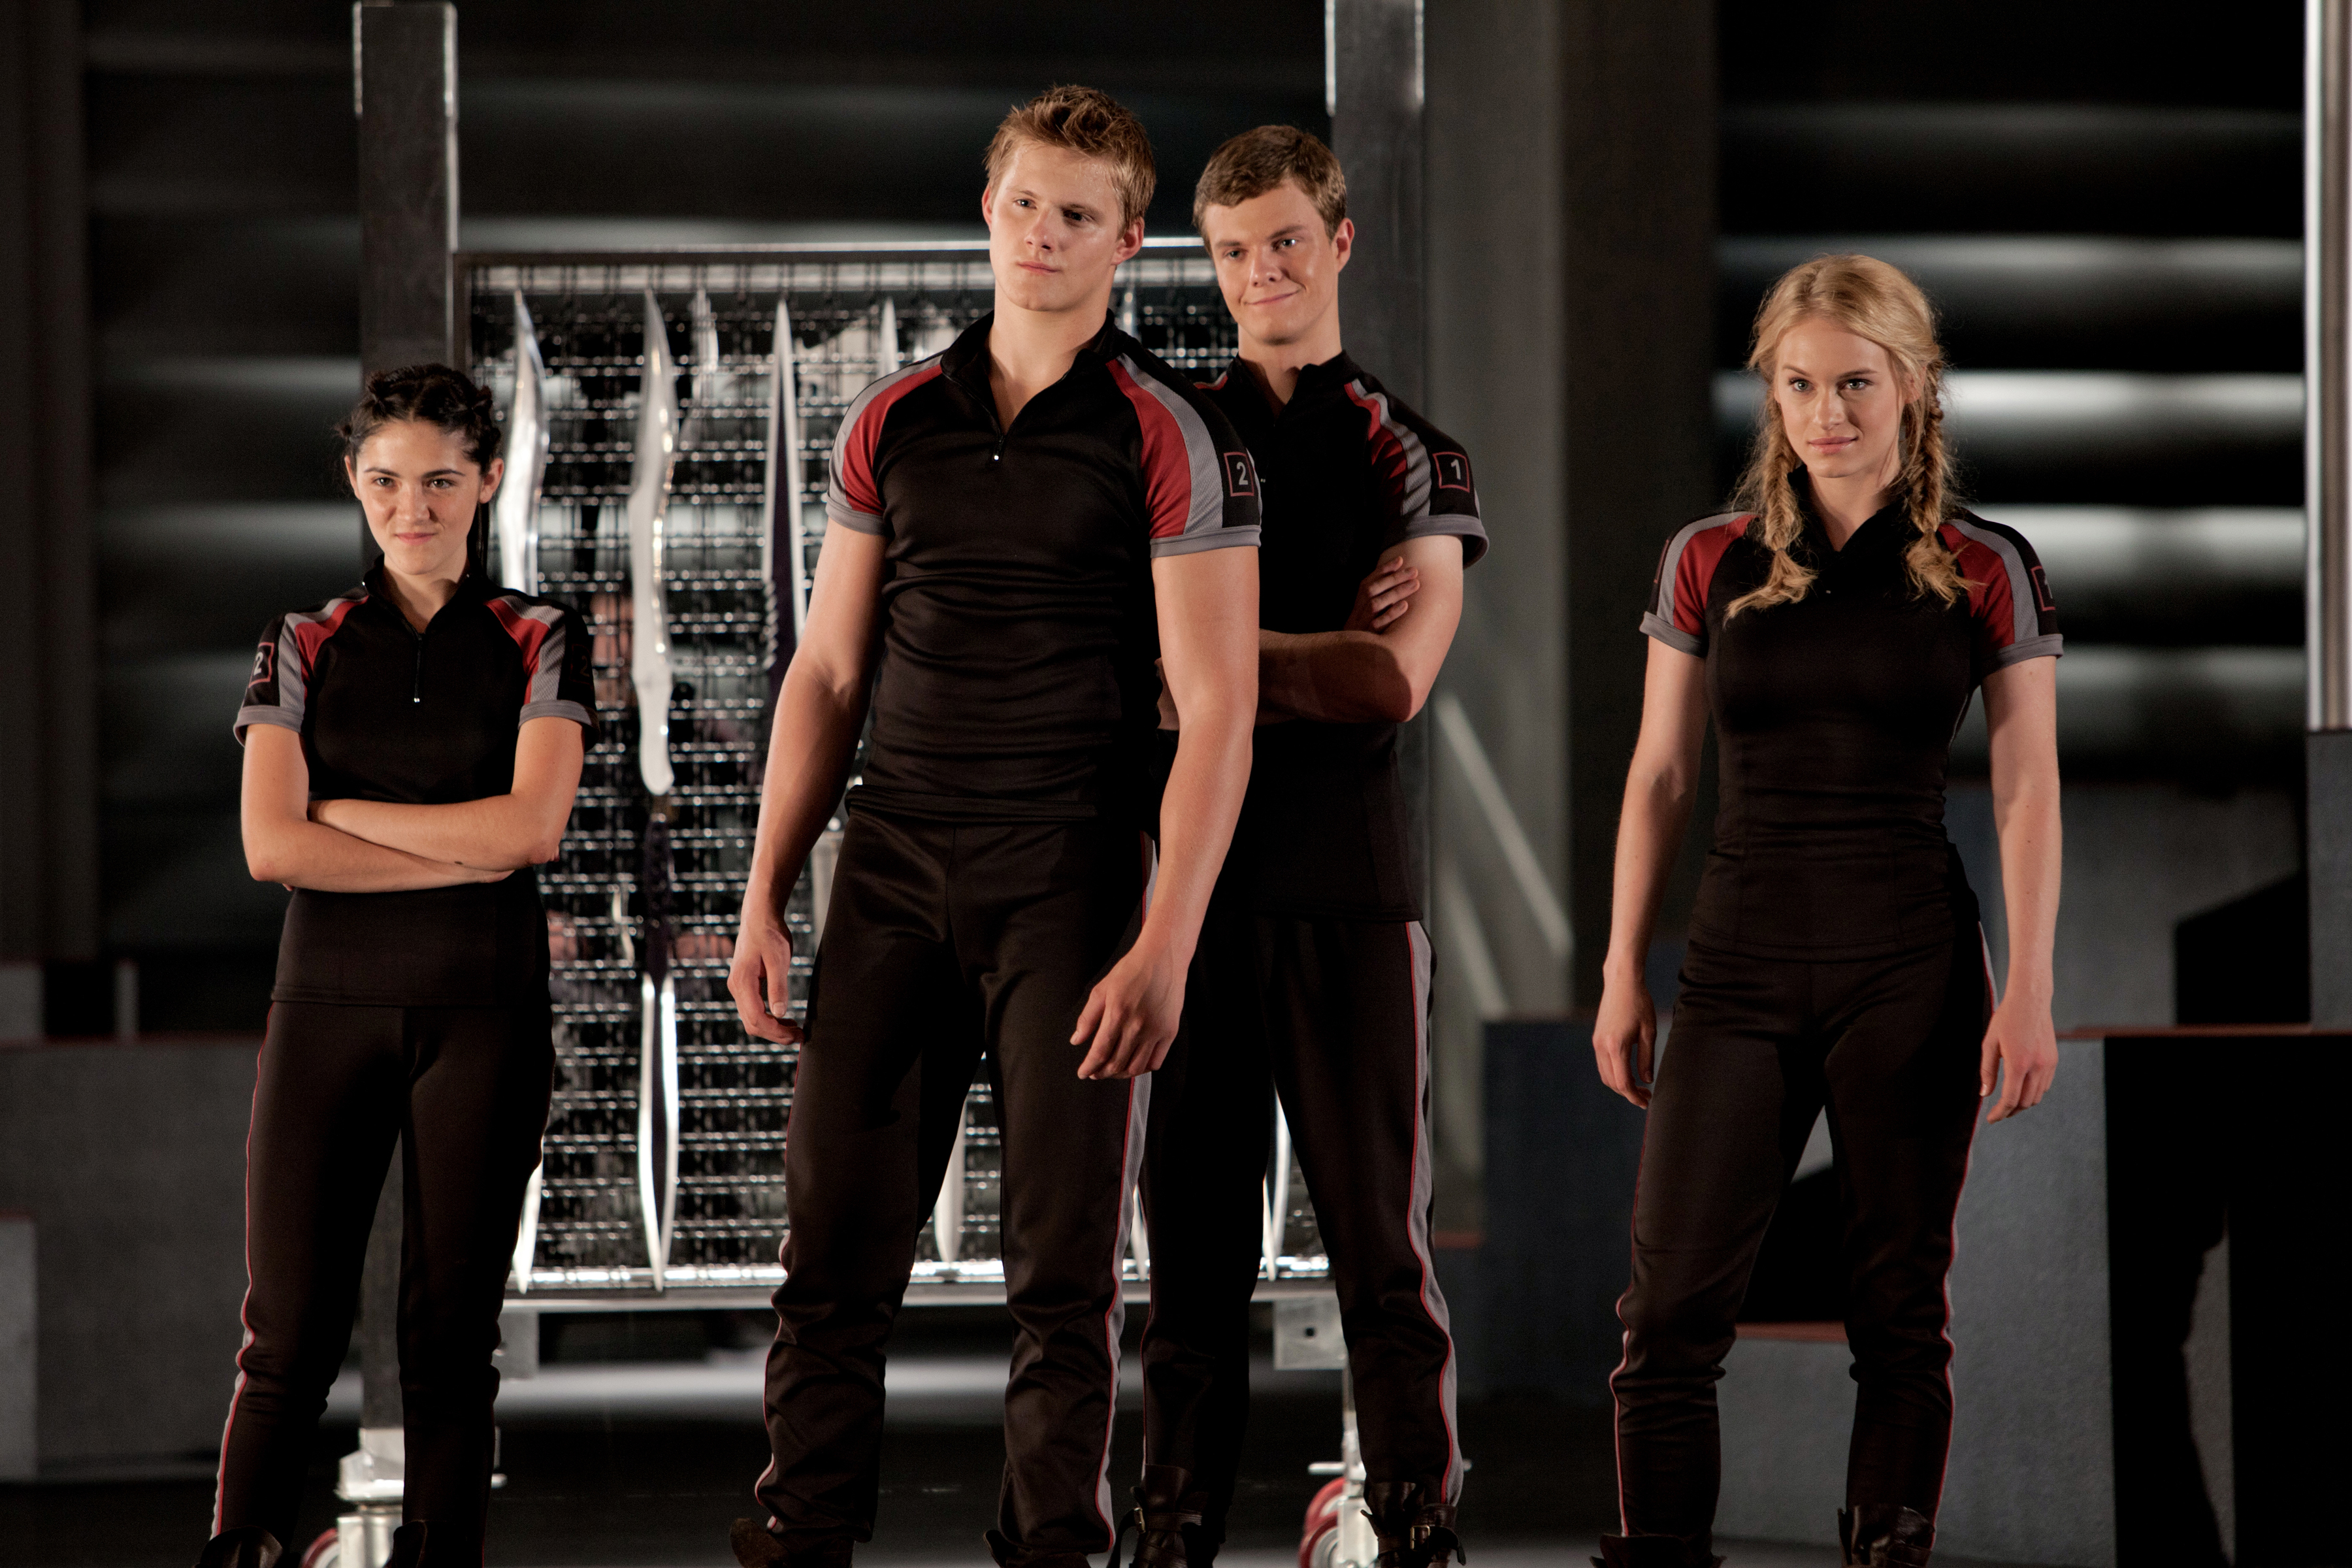 hunger games A hunger games concert tour is coming to the uk this summer the show follows previous set-ups where movies like la la land and jurassic park were scored live by an orchestra the first movie in the hunger games.